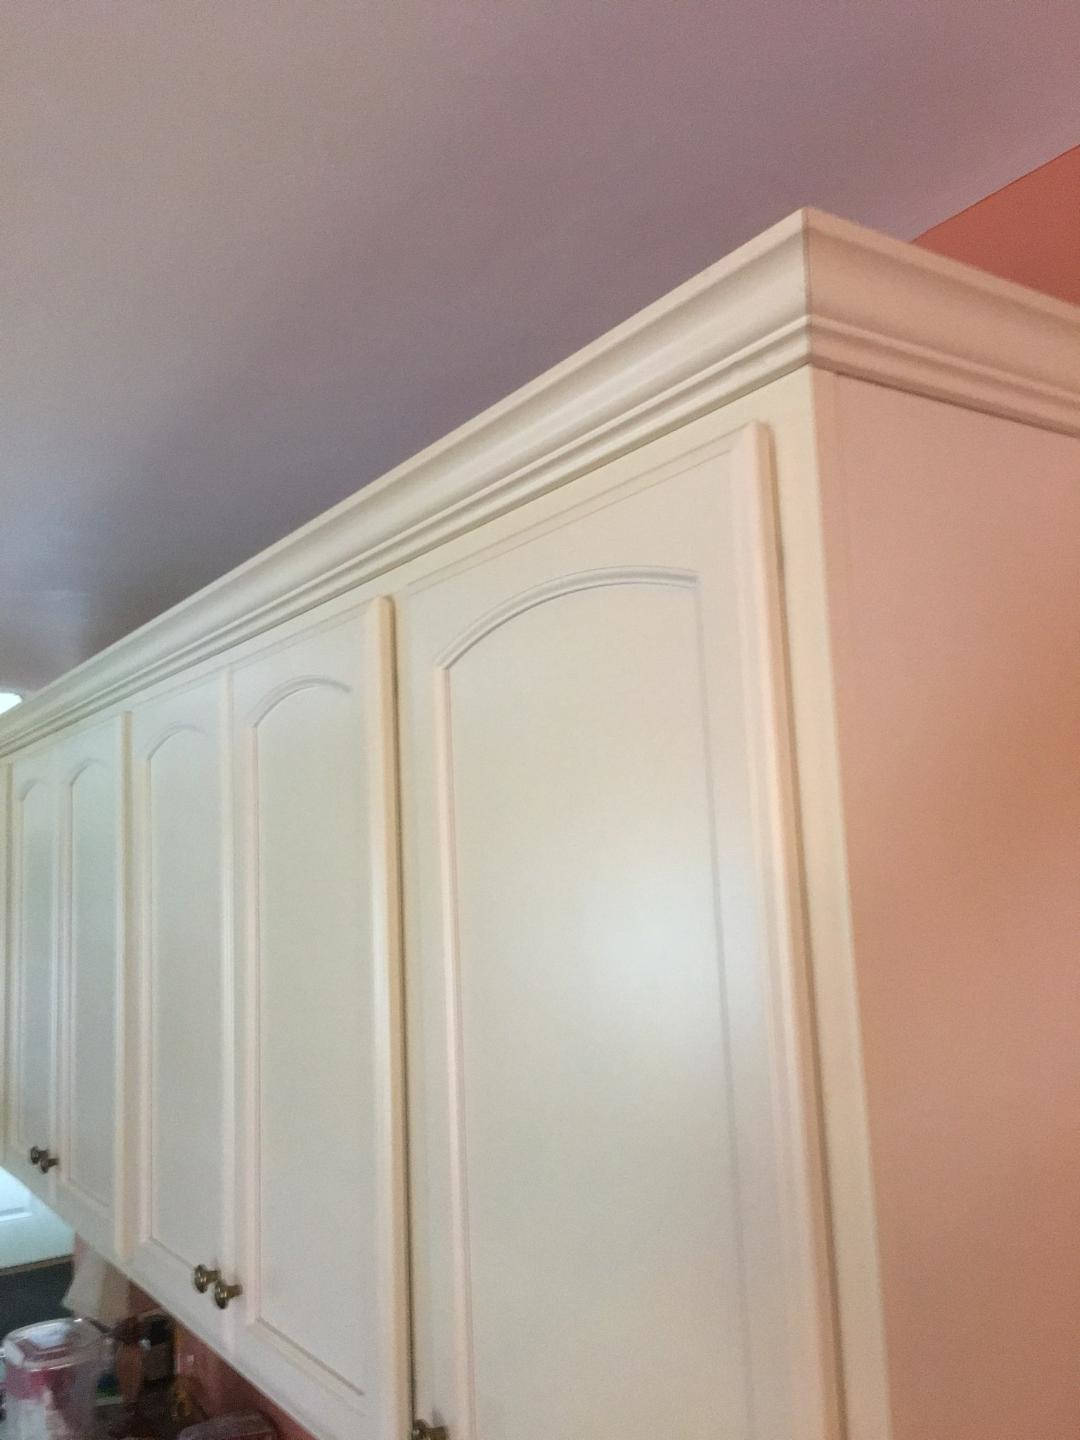 Off-white-kitchen-cabinets-with-crown-molding-Phoenix-2-opt